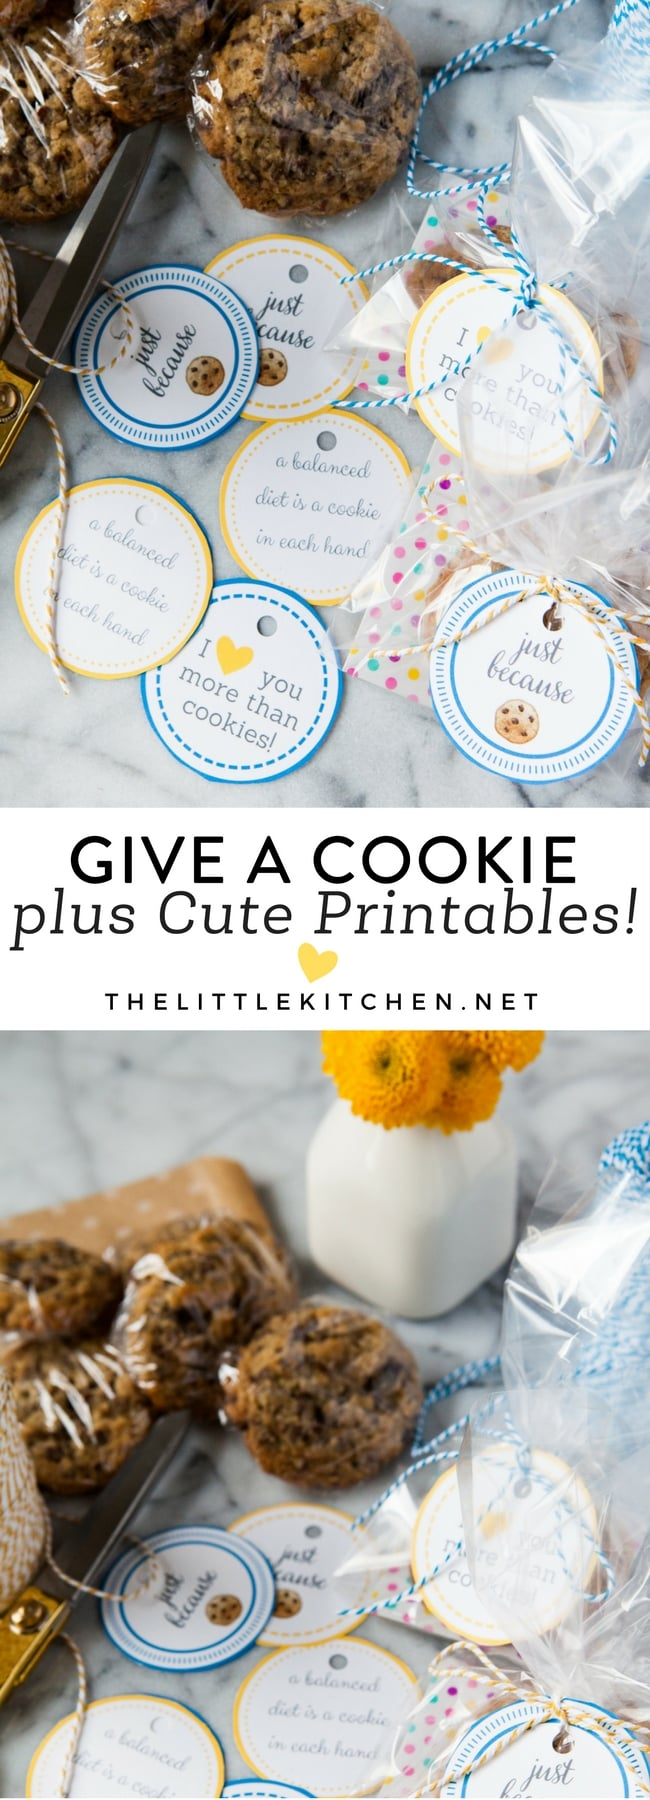 Give a Cookie from thelittlekitchen.net